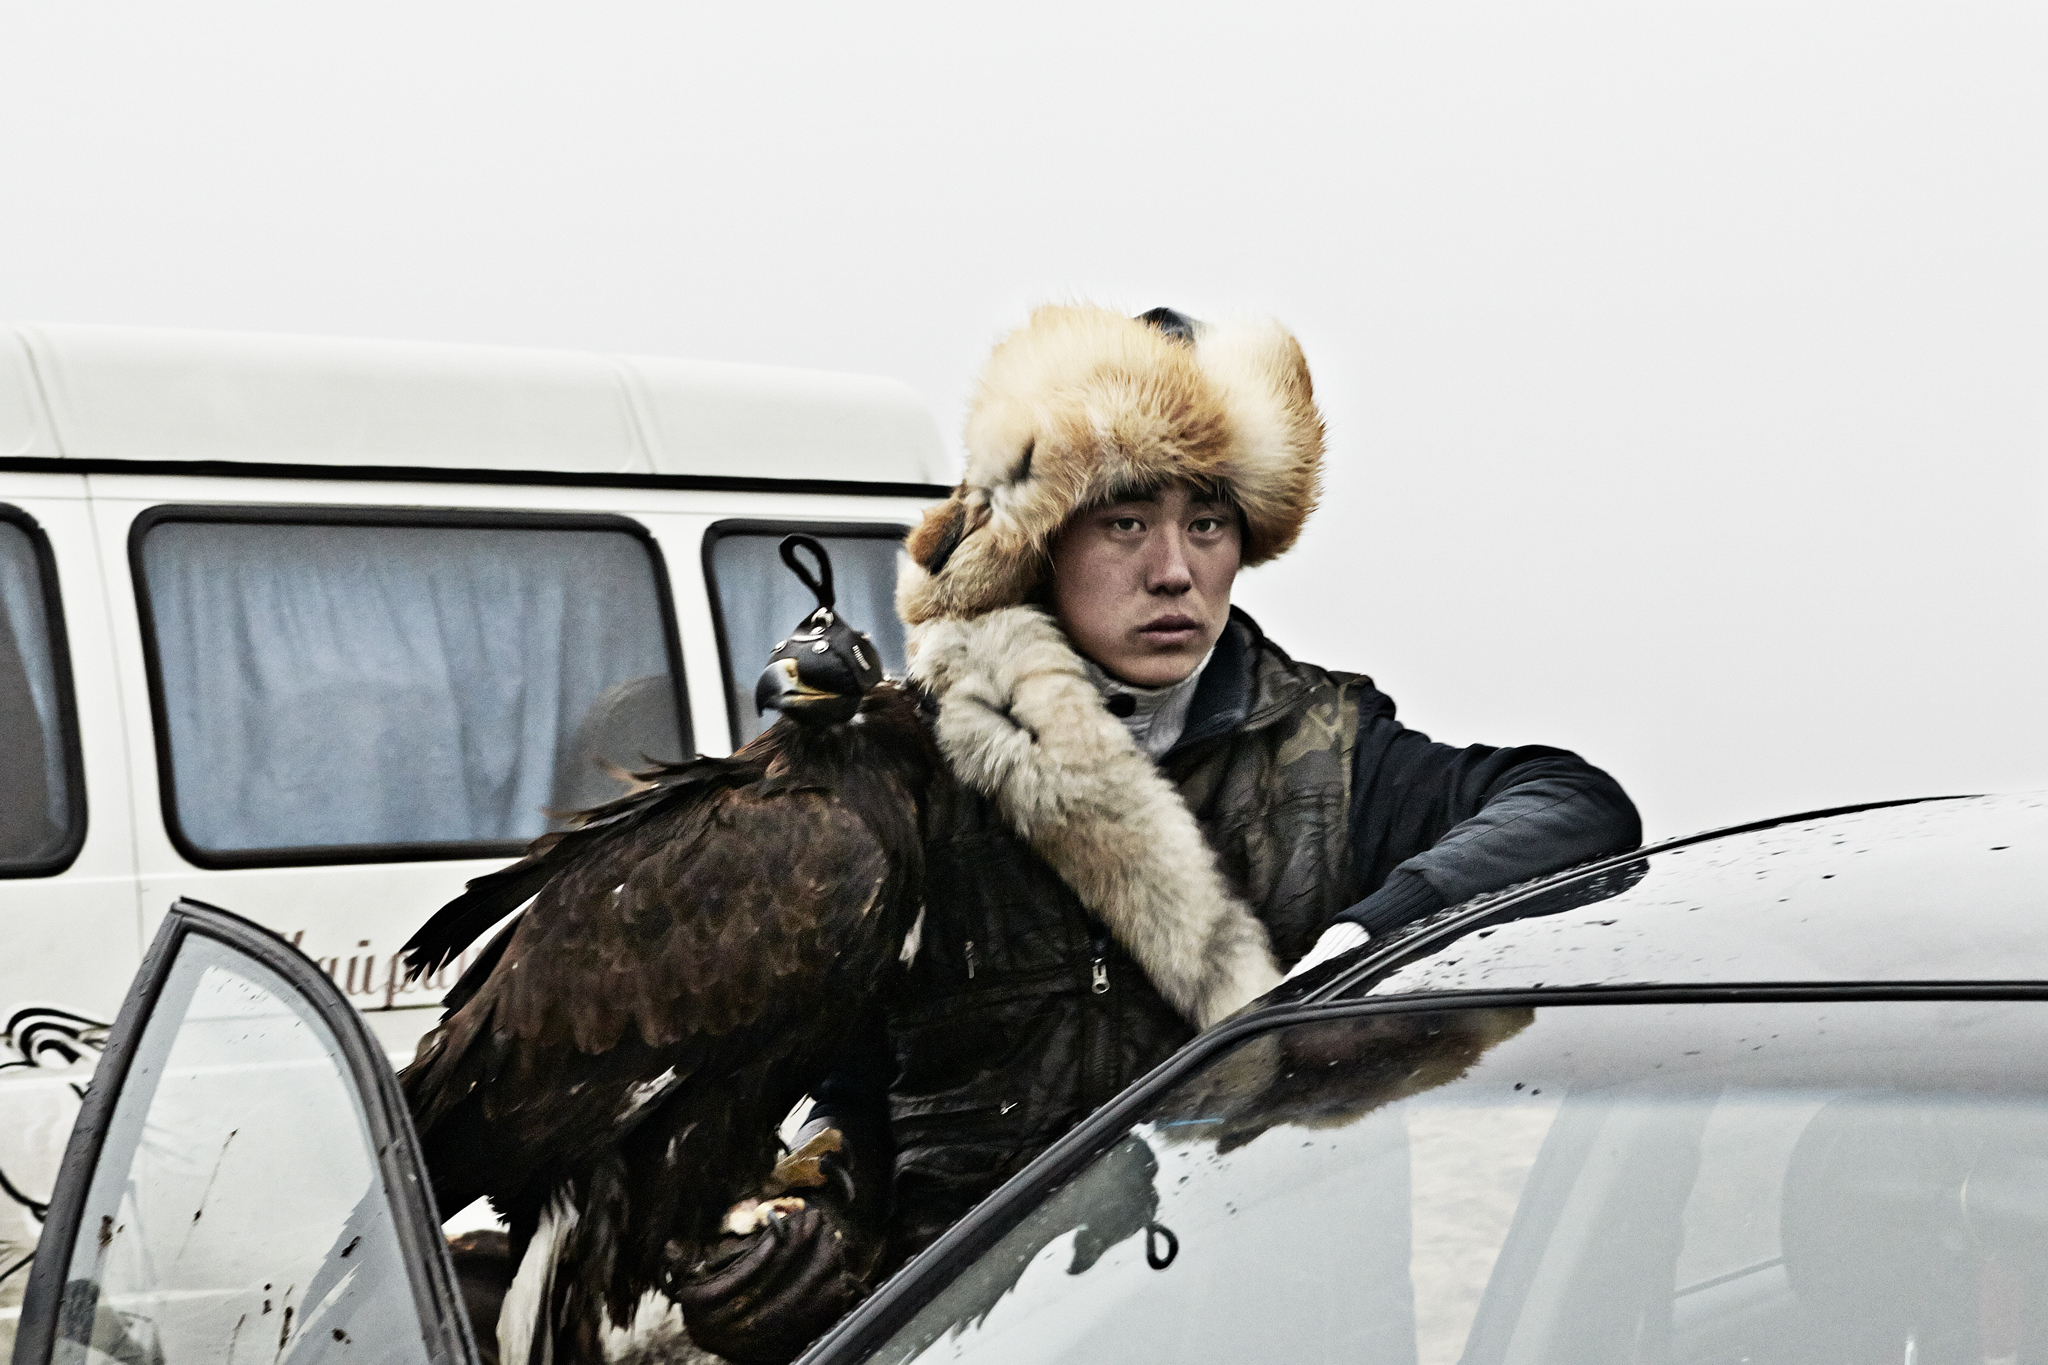 journey02_Kazakhstan04